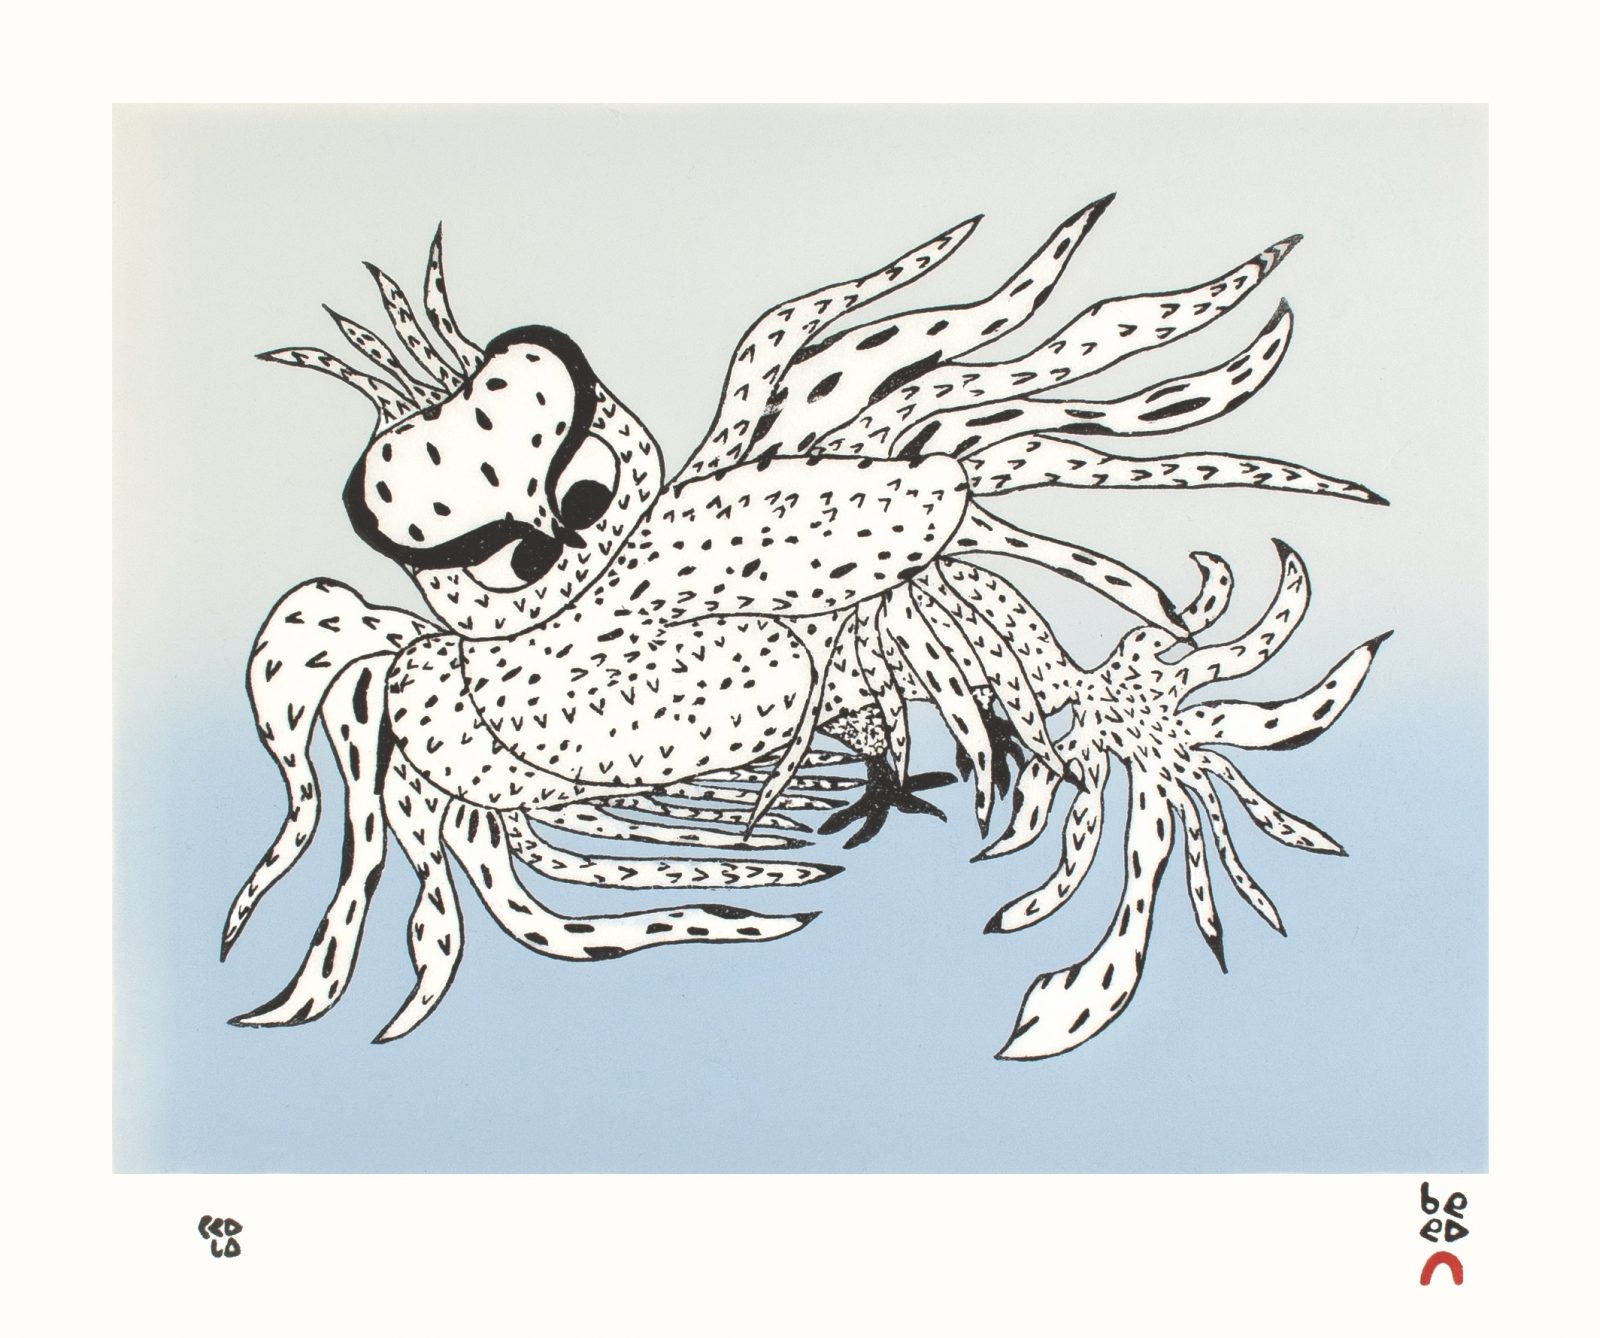 OOLOOSIE SAILA 31. Besotted Owl Cape Dorset Print 2021